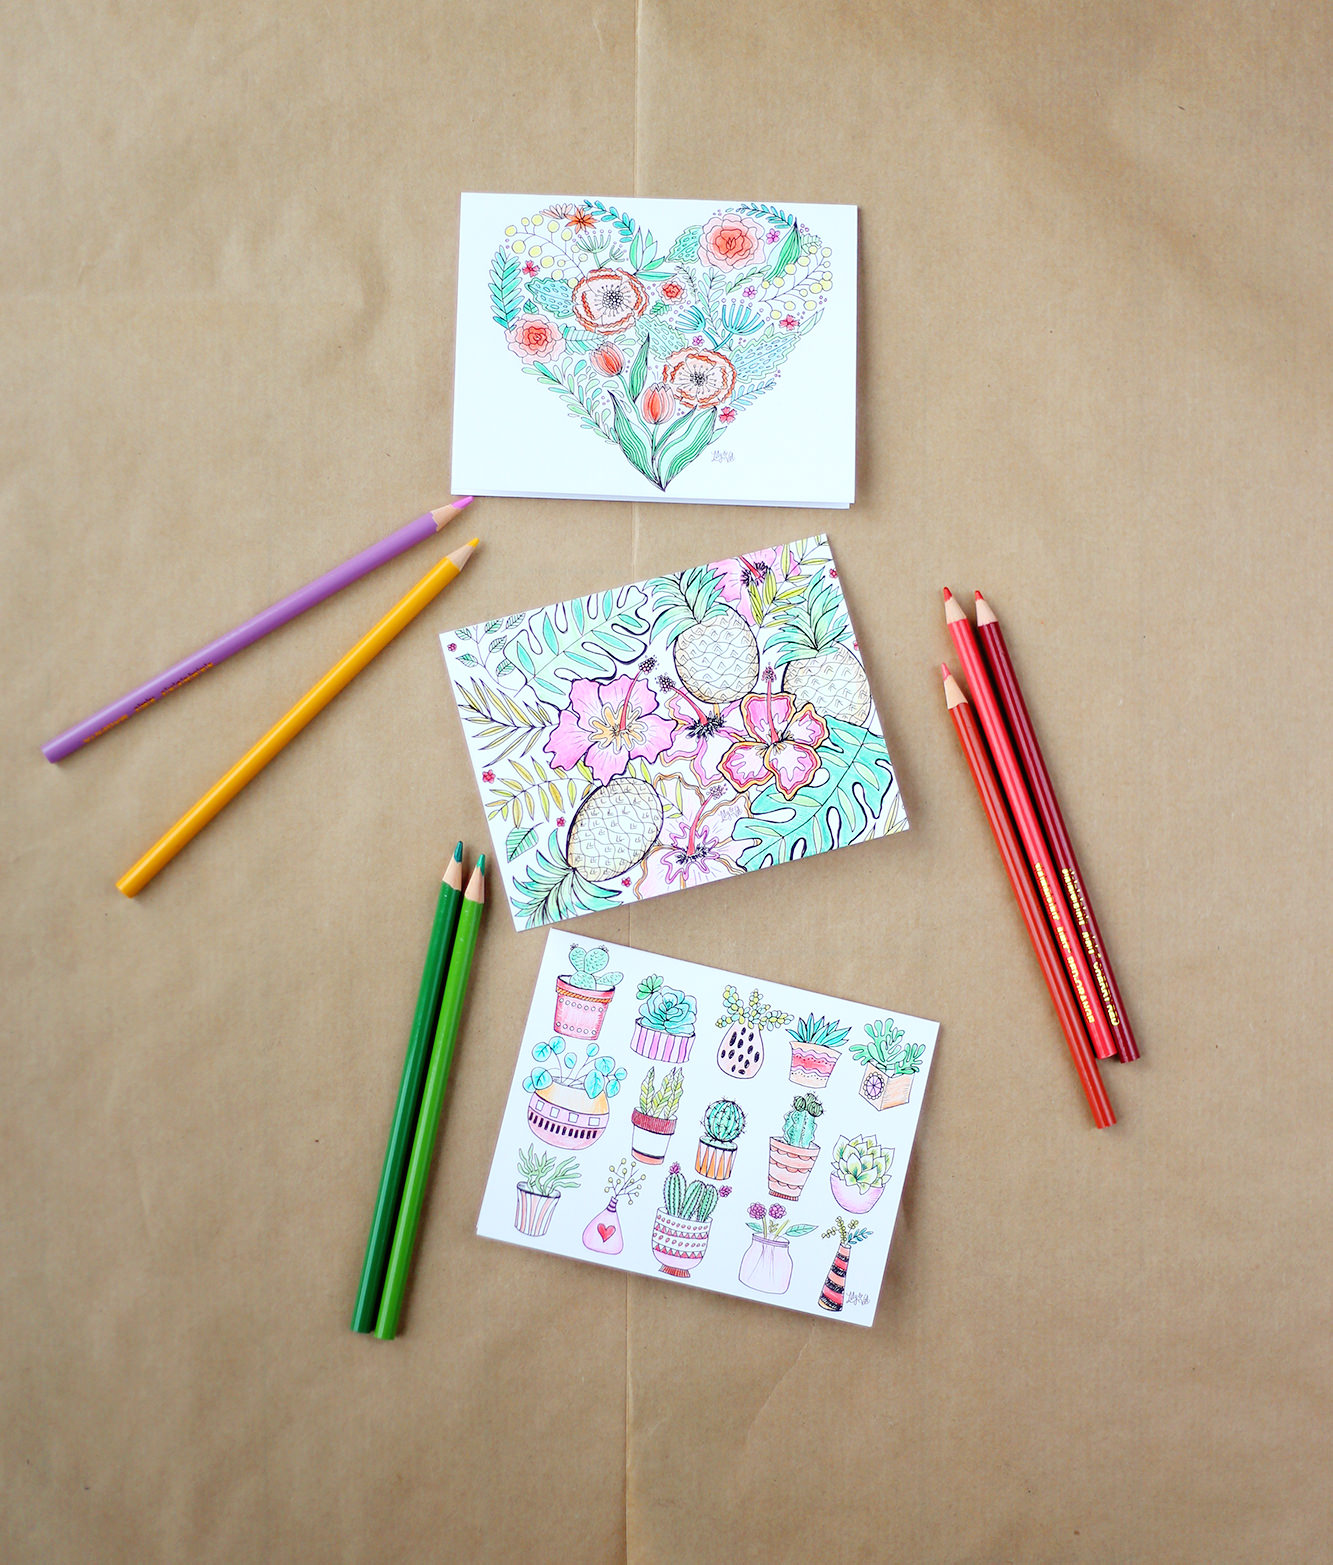 These three cards are included in the Lily & Val assorted coloring notes set. Color them and send them off!